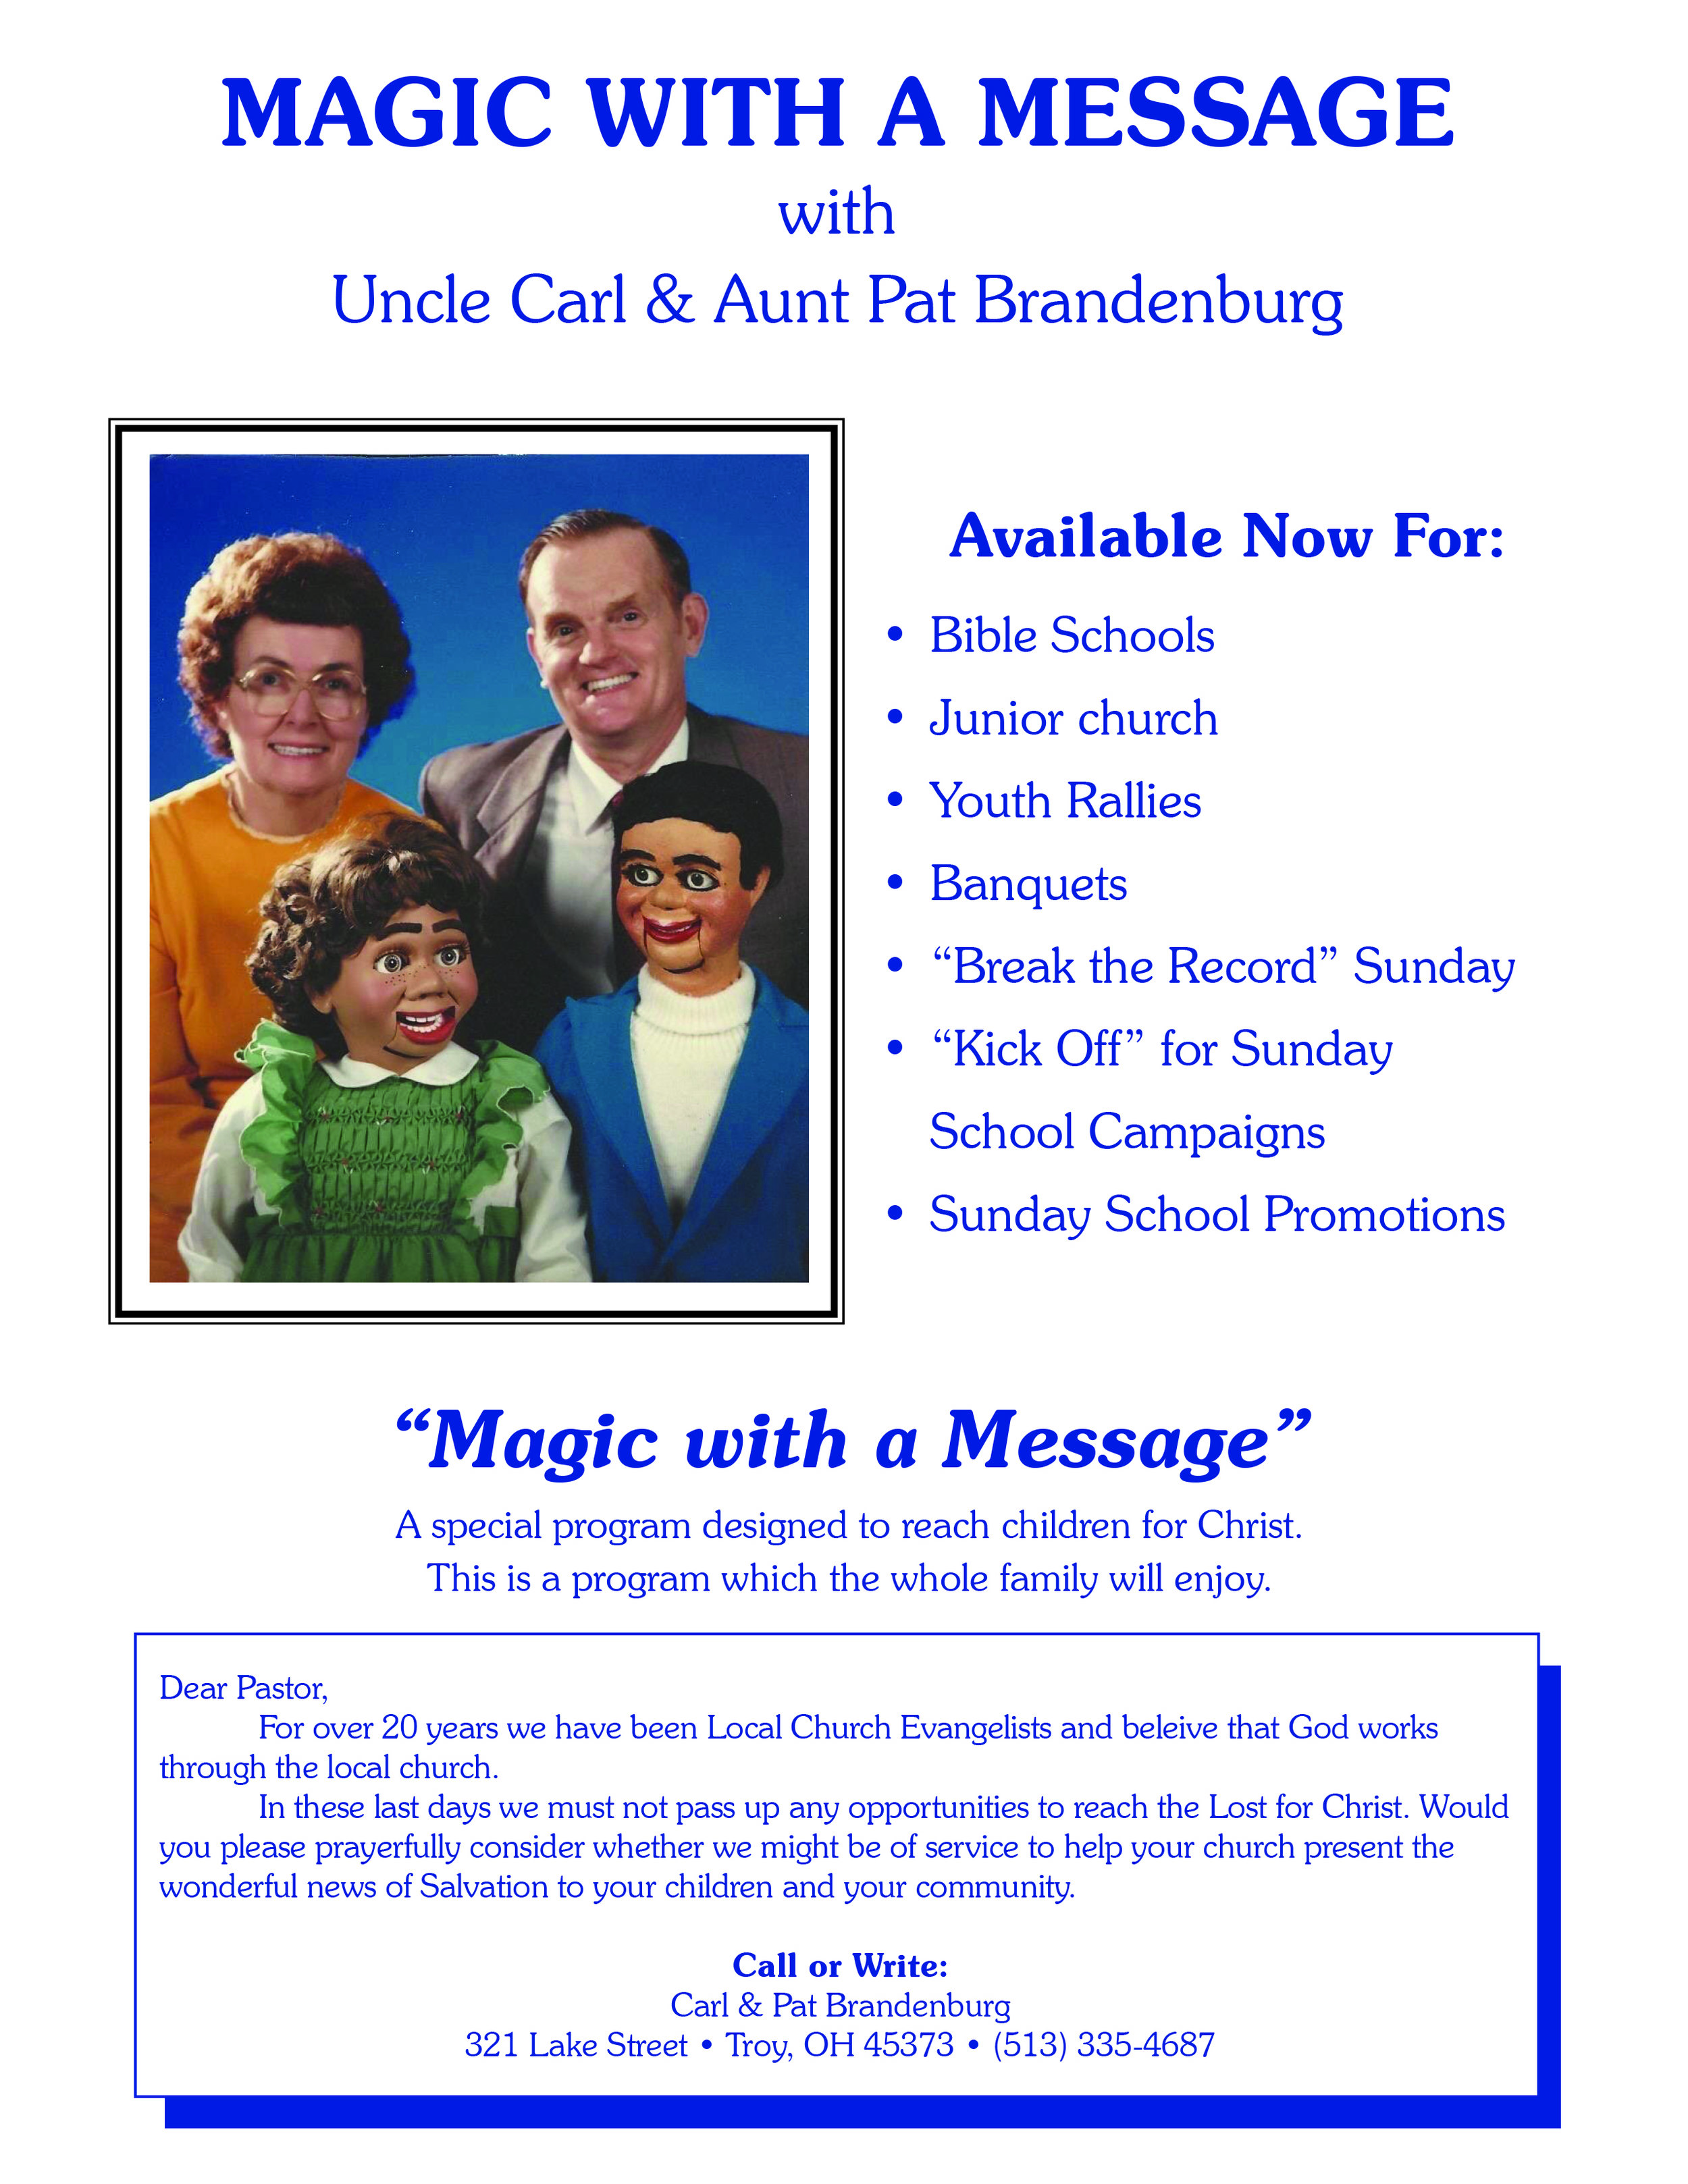 Dad's ministry promotion flyer to pastor's from the 1980's & 1990's.